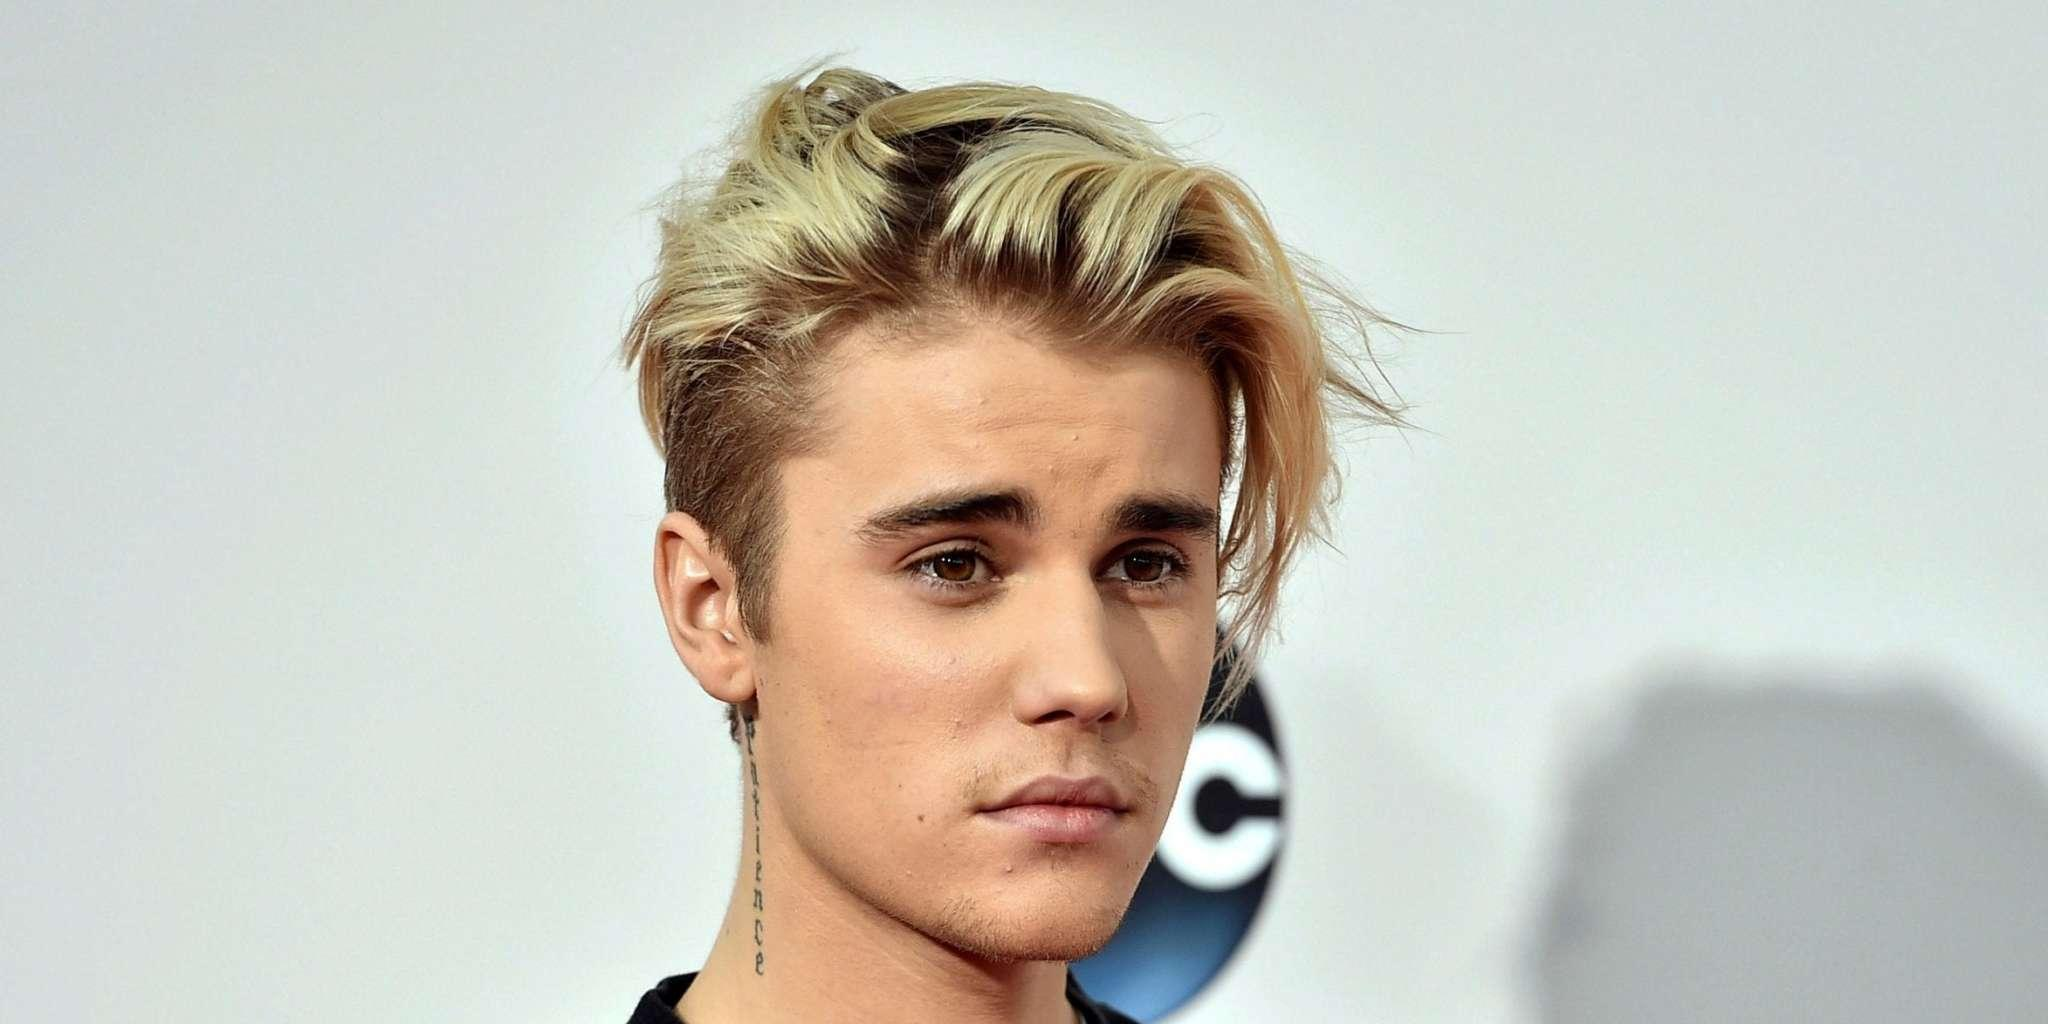 Justin Bieber Opens Up About His Troubled Past And Heavy Drug Abuse